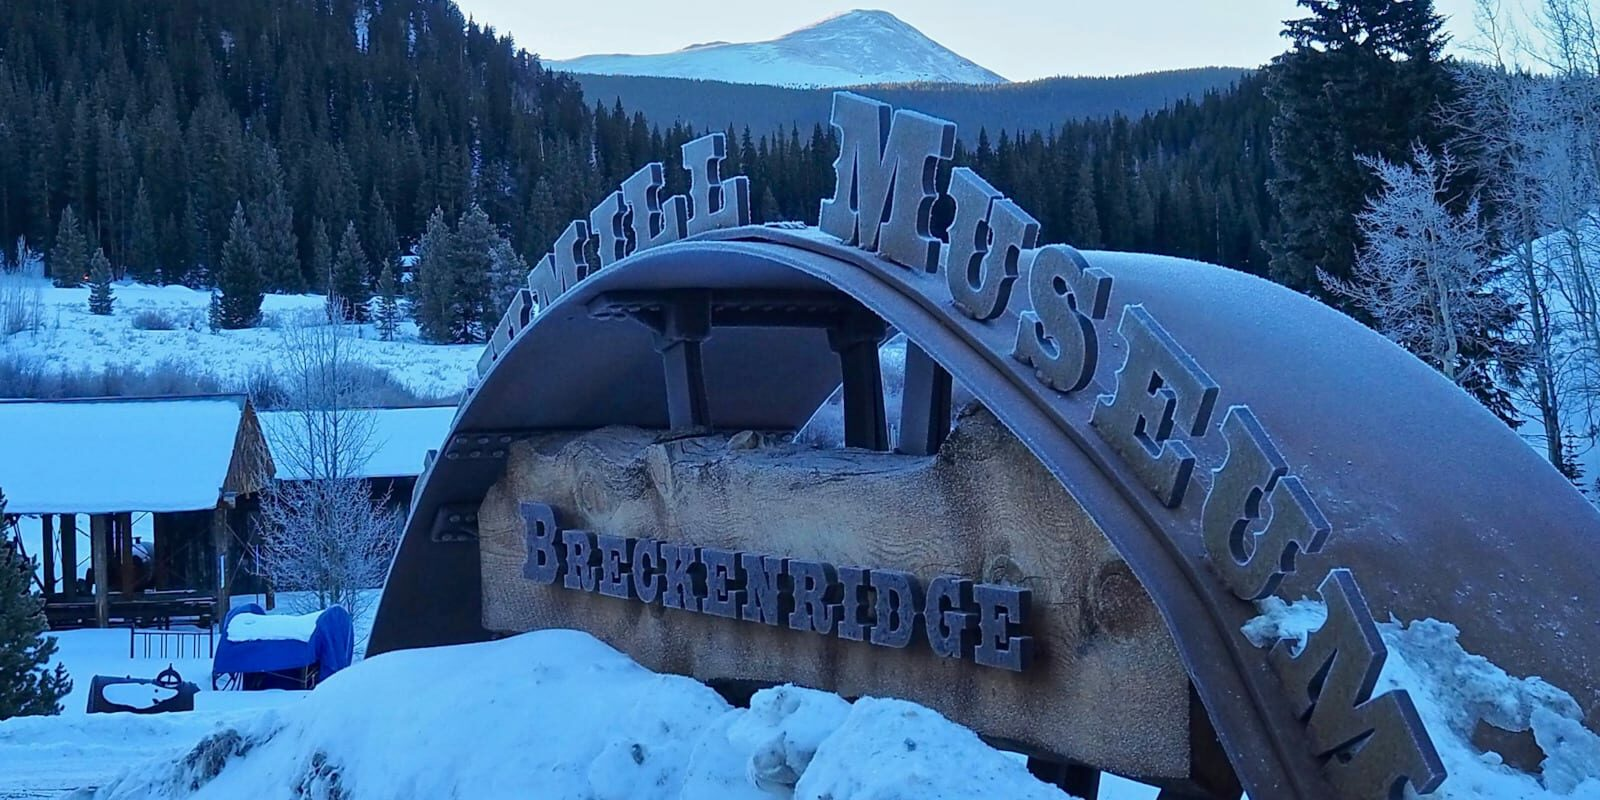 Image of the sign for the Breckenridge Sawmill Museum in Colorado